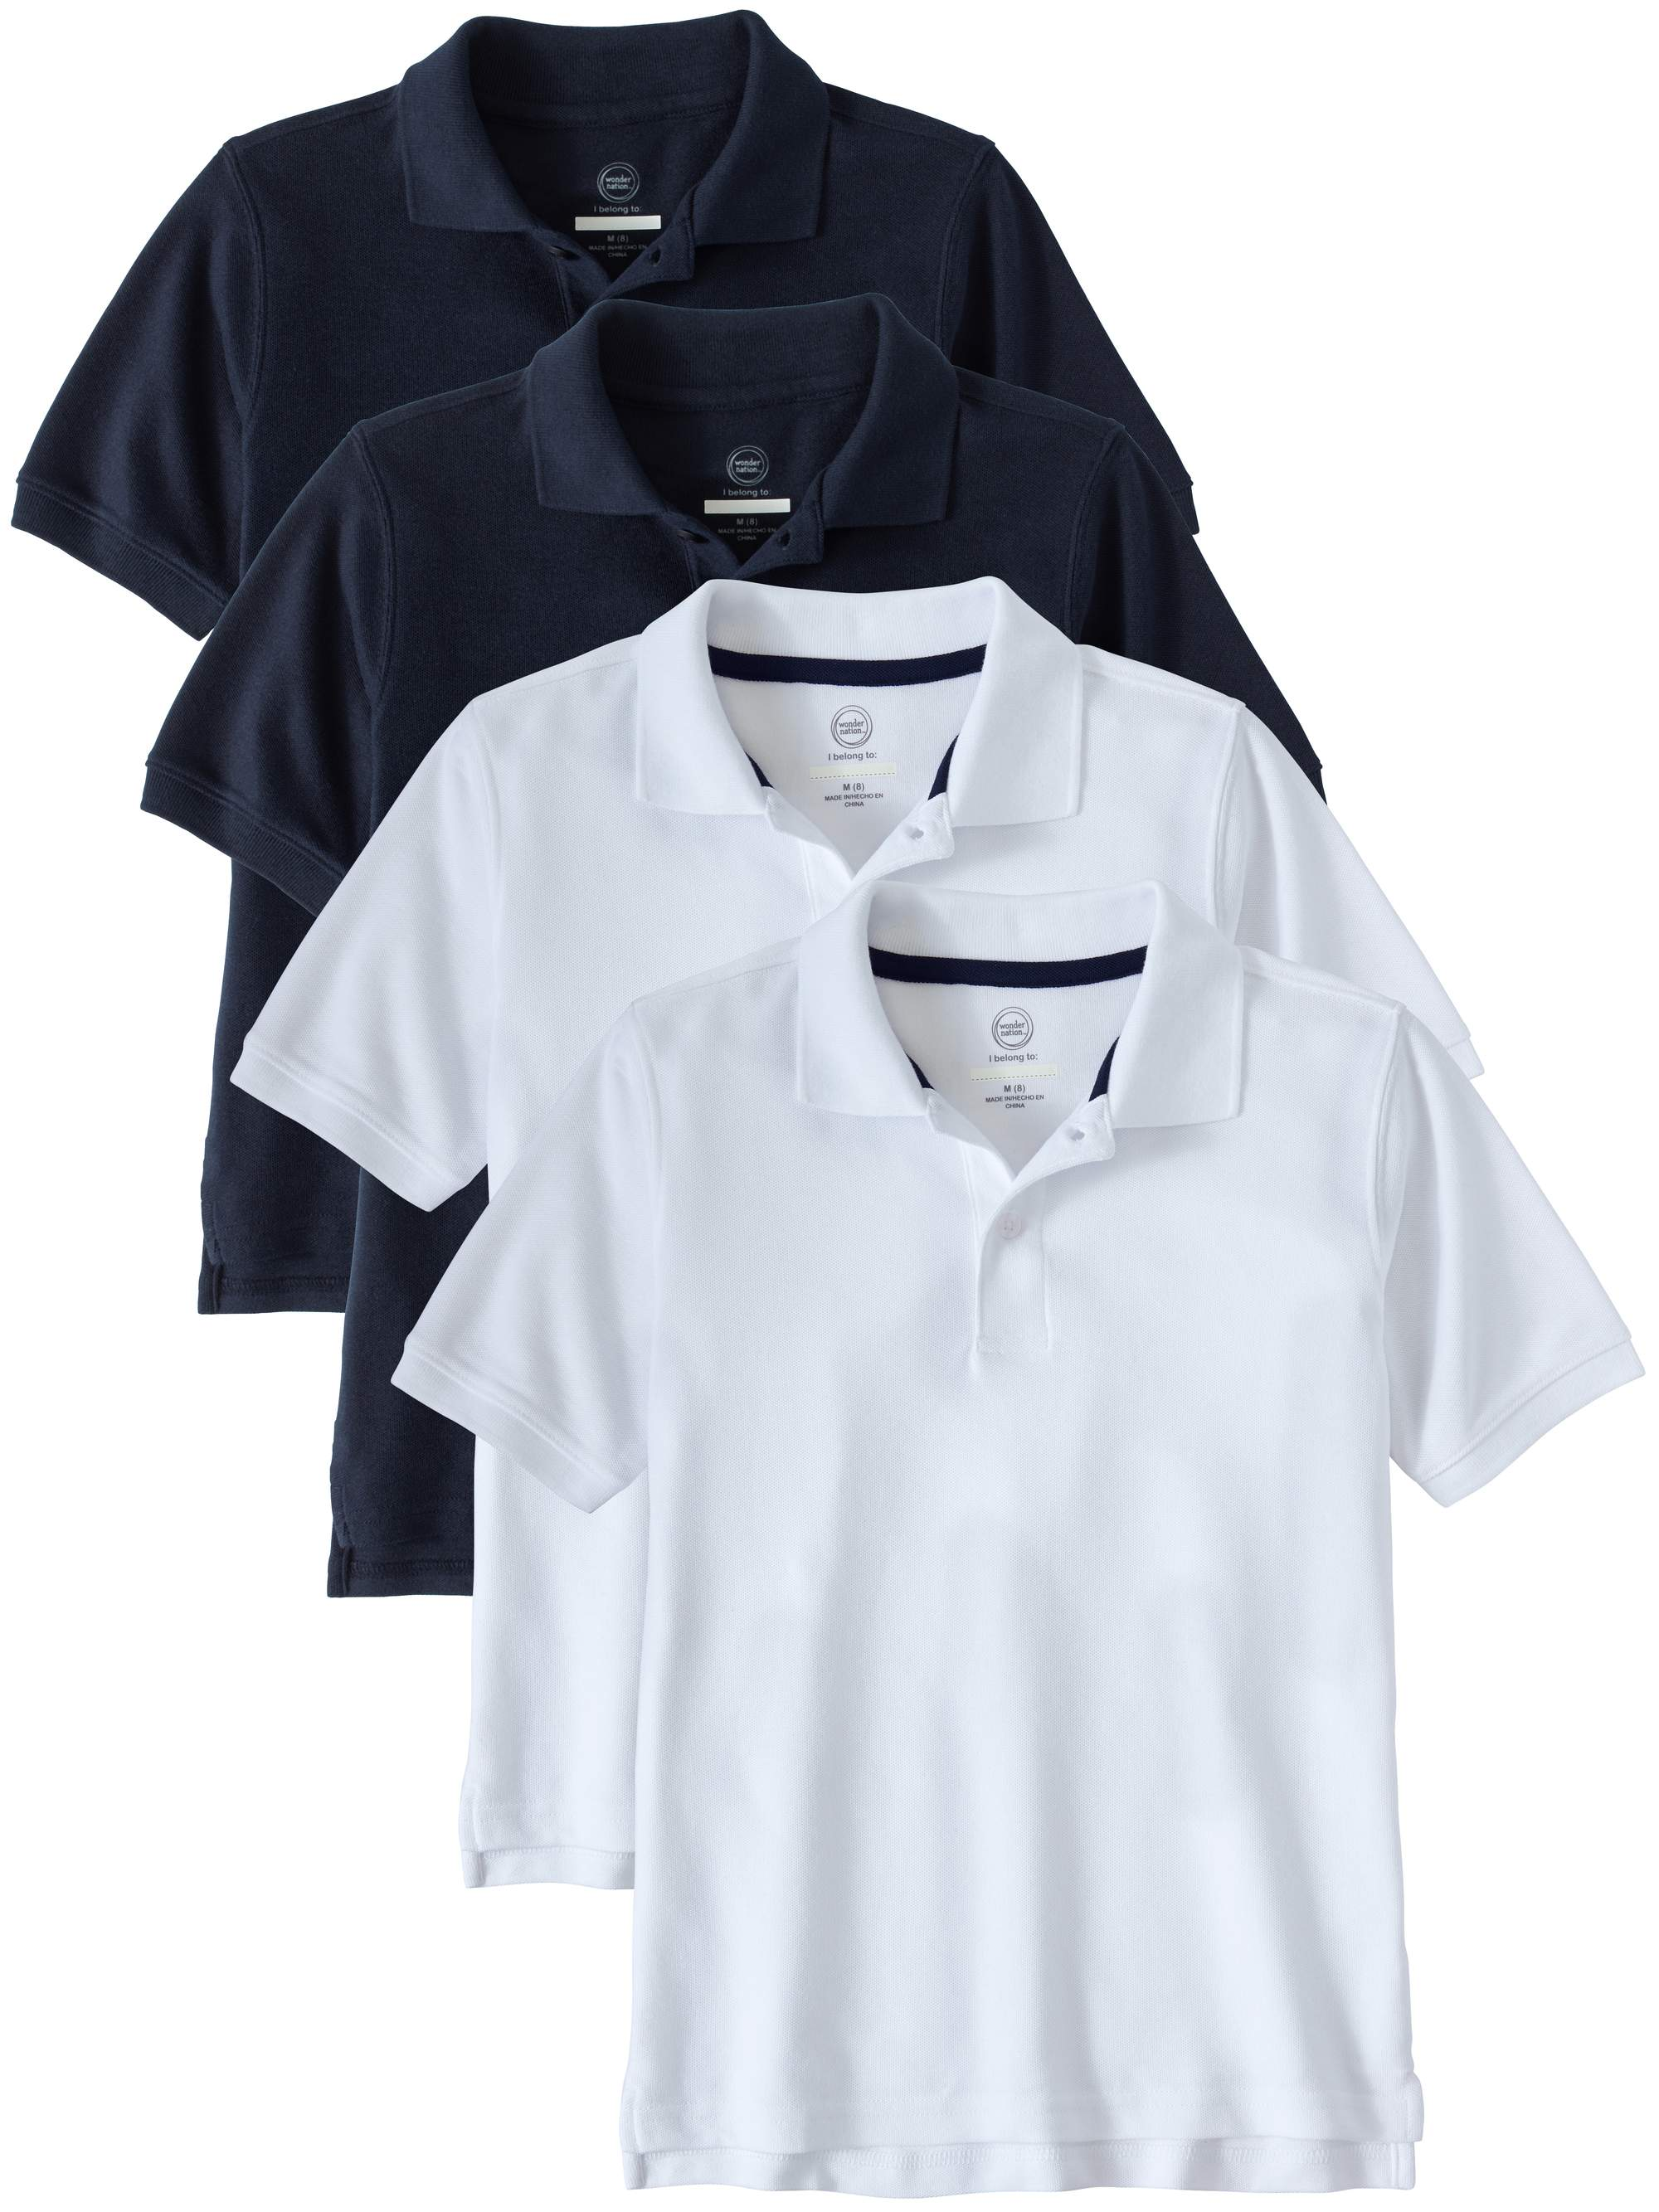 Boys School Uniform Short Sleeve Double Pique Polo, 4-Pack Value Bundle